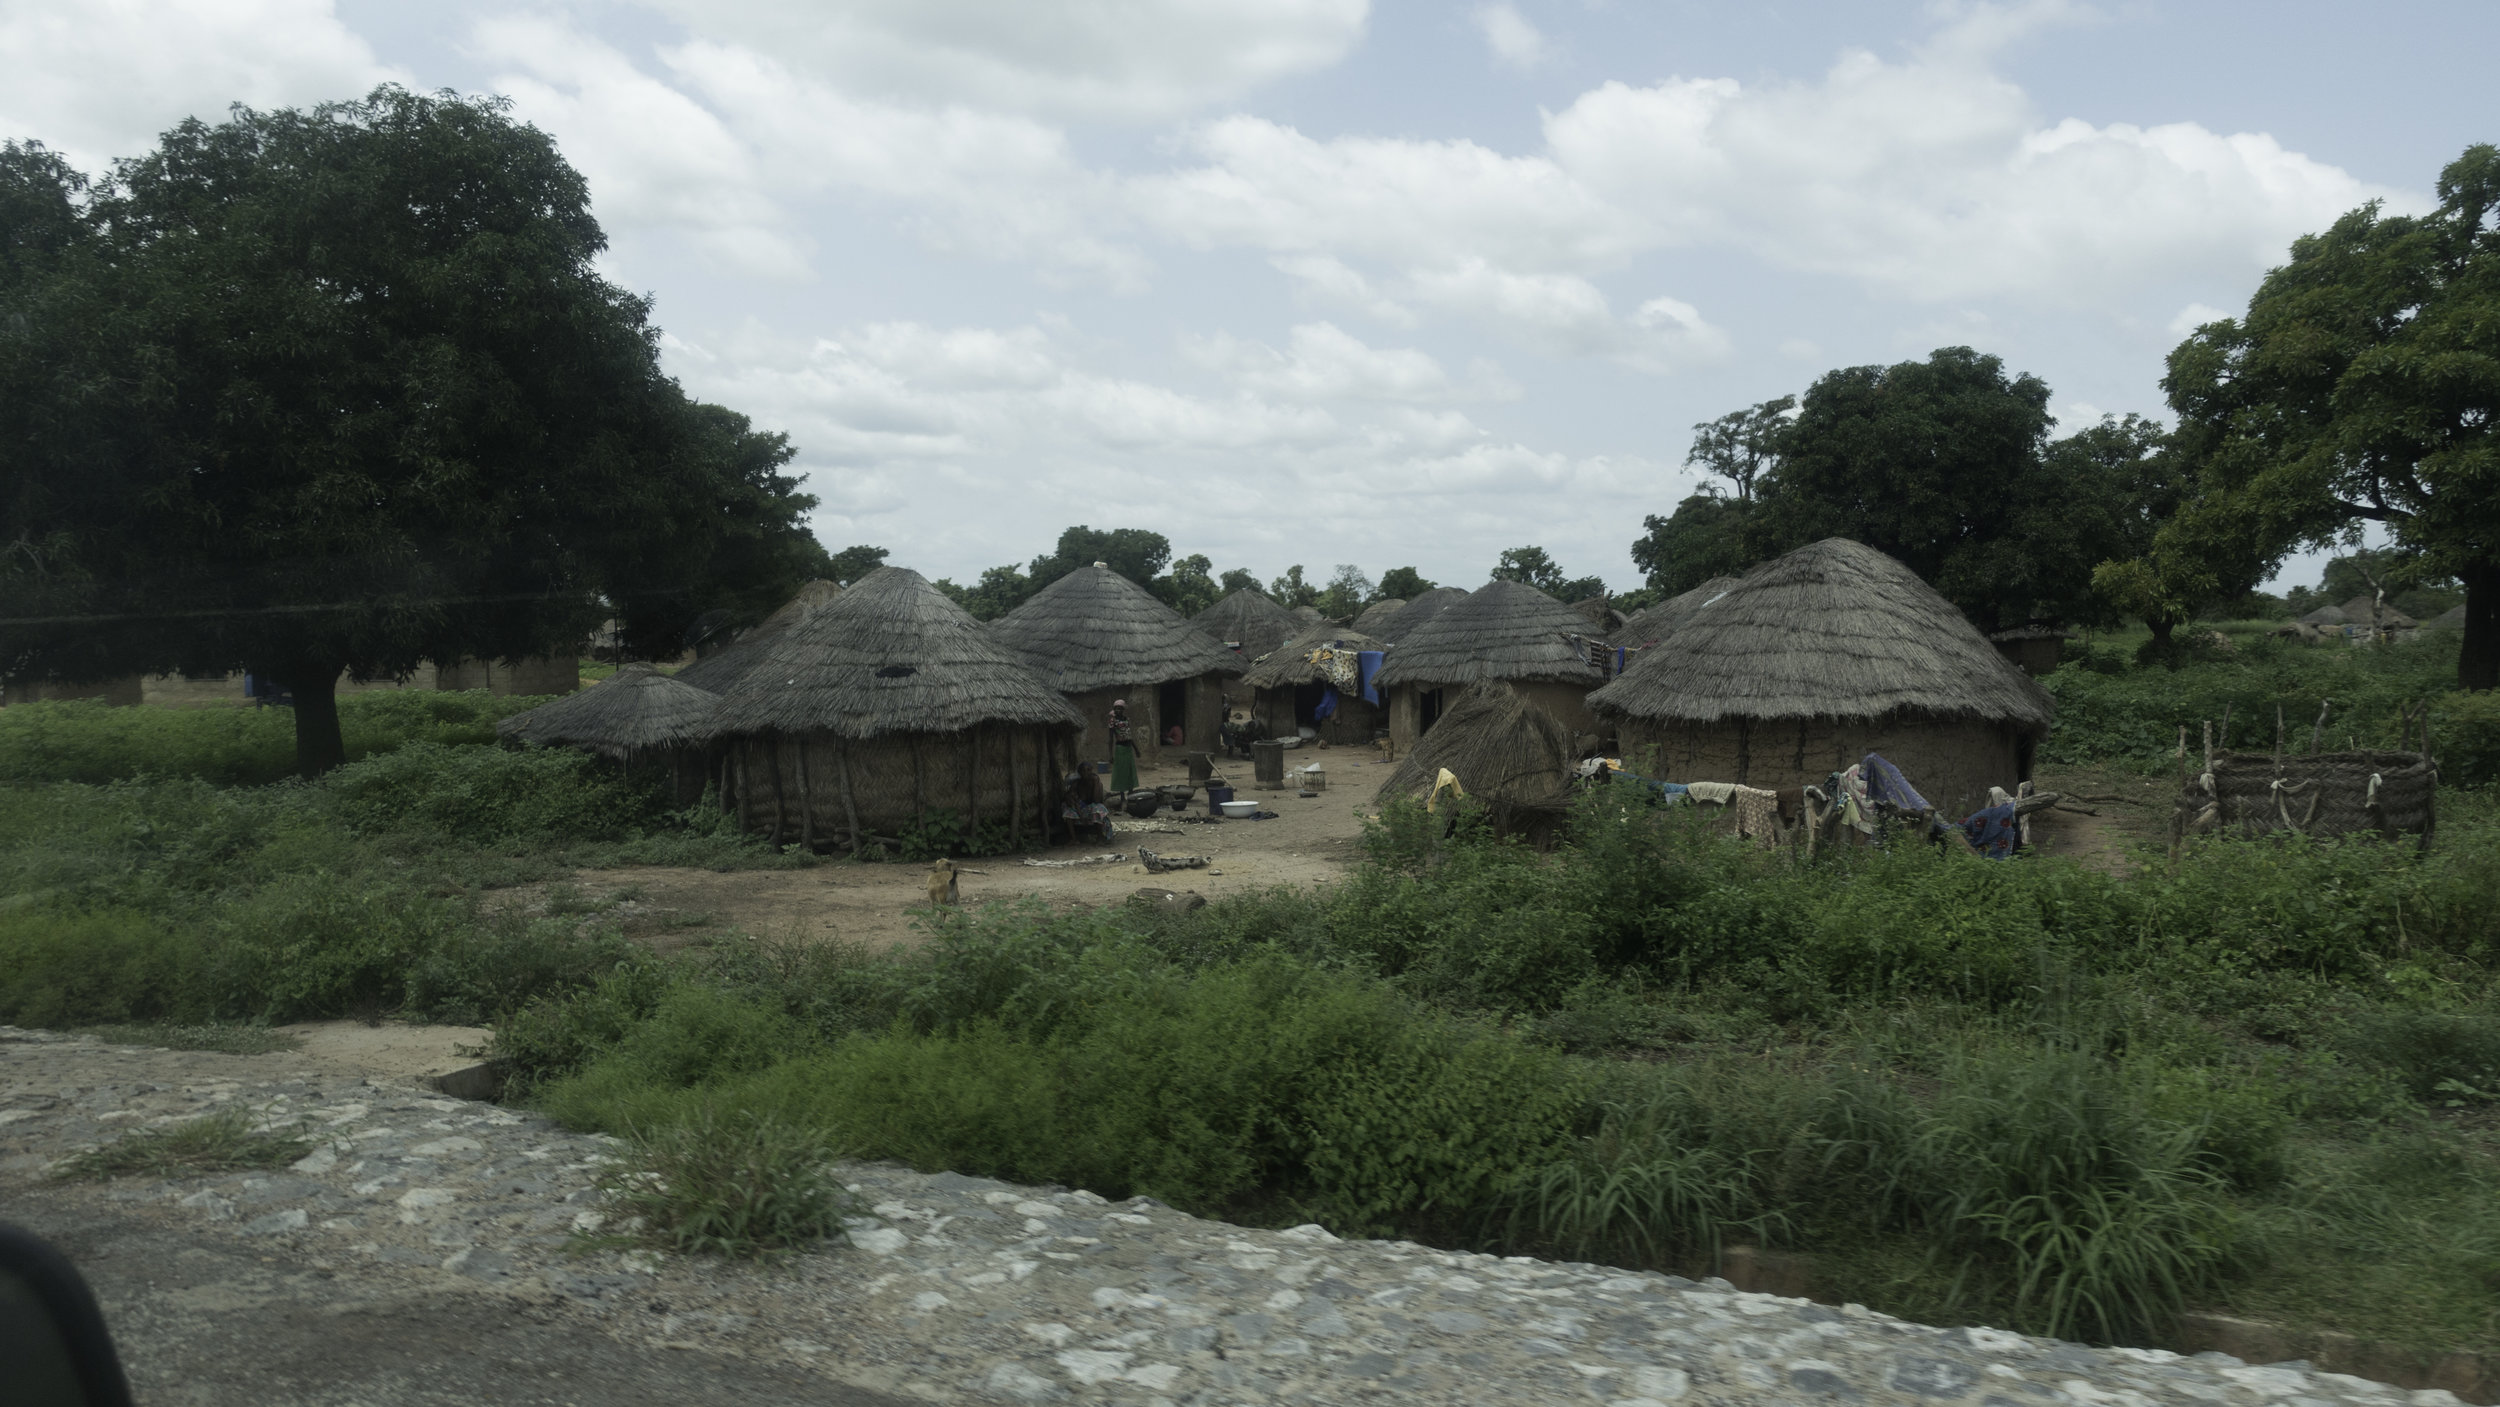 Villages like this are common to see on our drive up to the northern part of the country.